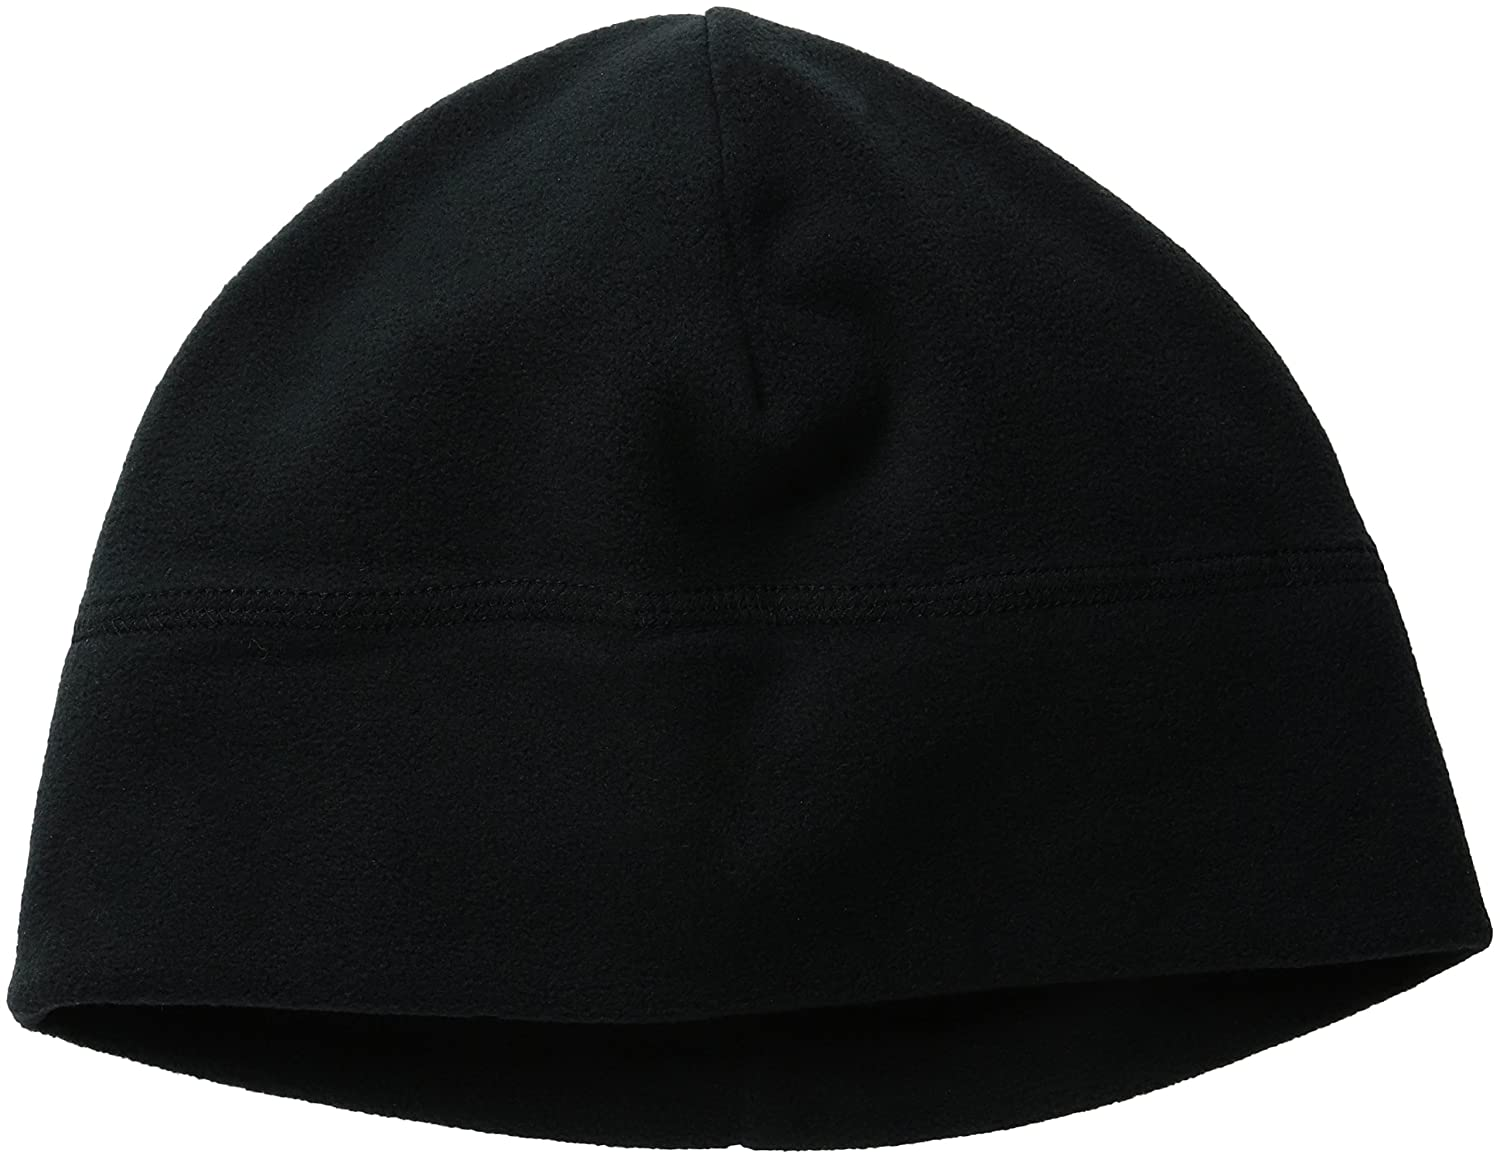 608bf0e7b76 Amazon.com  Watch Cap (Black)  Sports   Outdoors